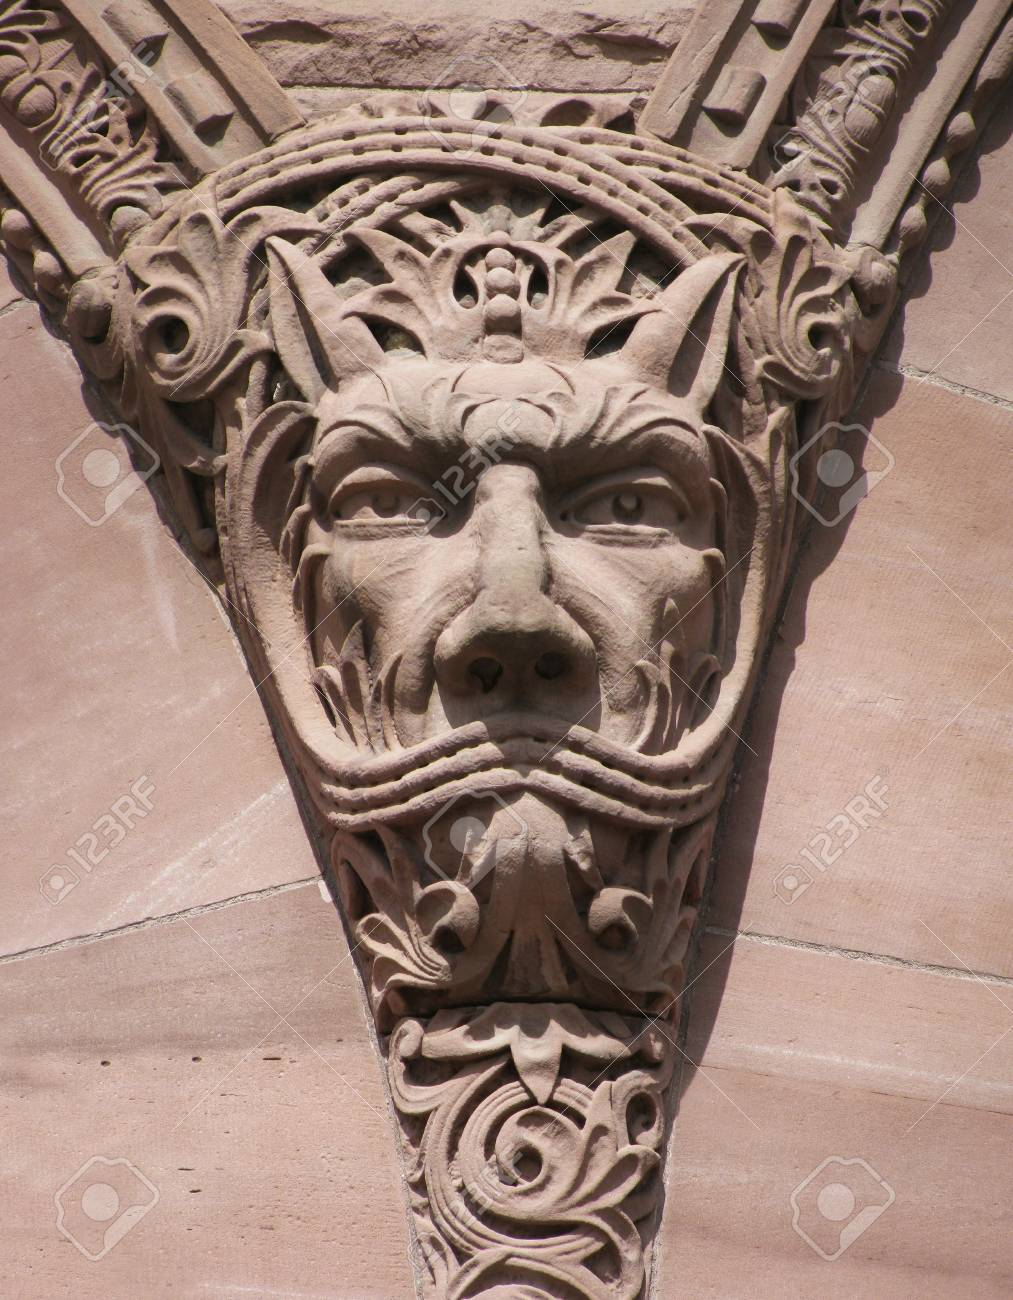 A not so fierce looking gargolye on the front of the parliament buildings, Toronto, Ontario, Canada. Stock Photo - 4759527